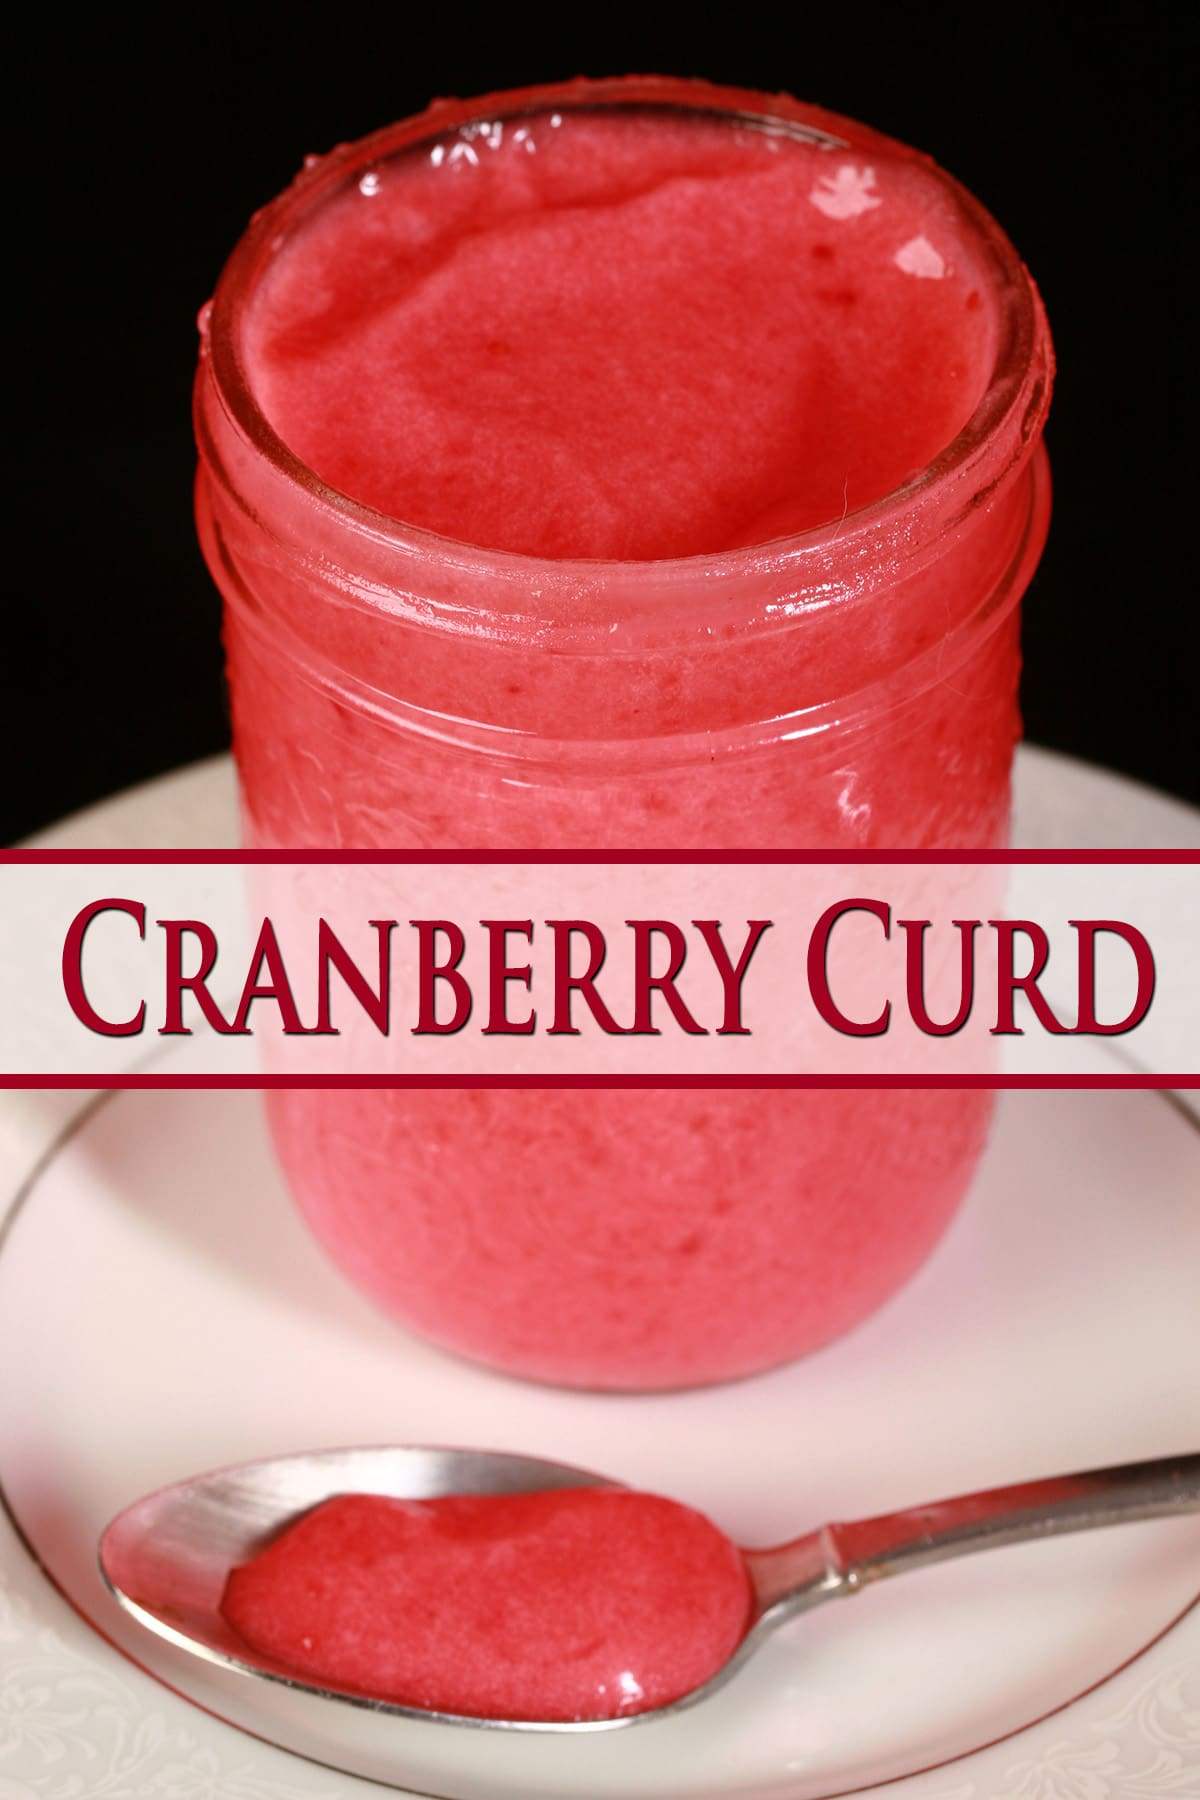 A jar of cranberry curd on a small white plate, next to a spoon with curd on it.